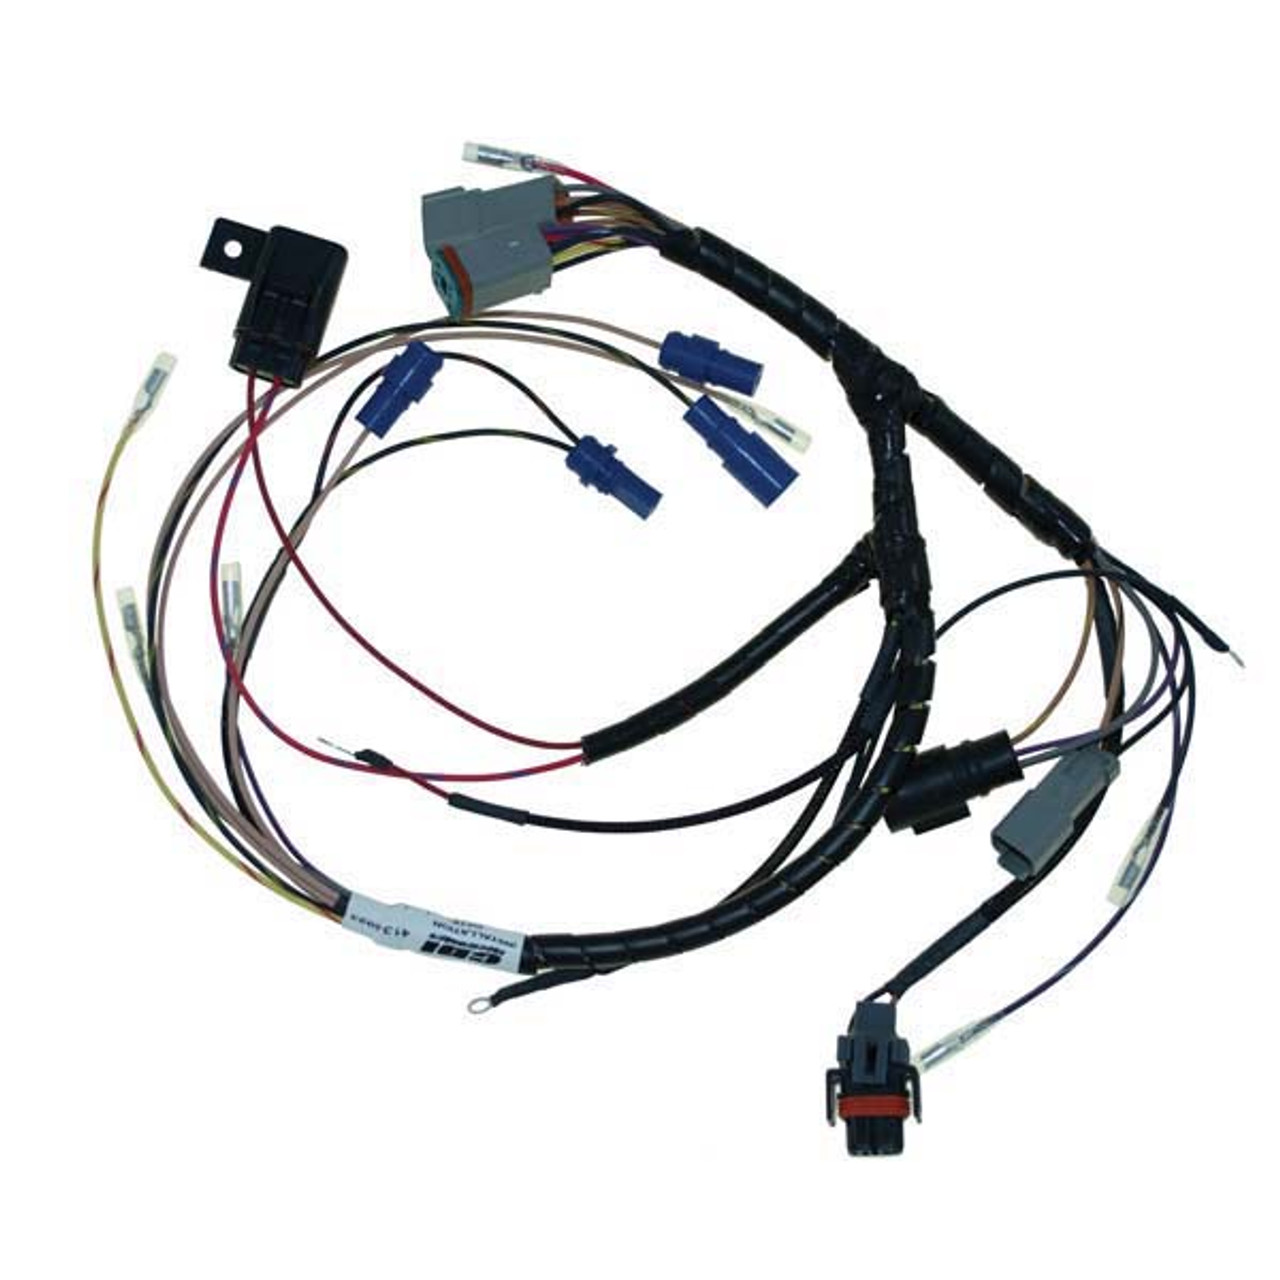 CDI 413-6023 Johnson Evinrude Harness on johnson thermostat, johnson ignition switch, johnson fuel tank, johnson hardware,